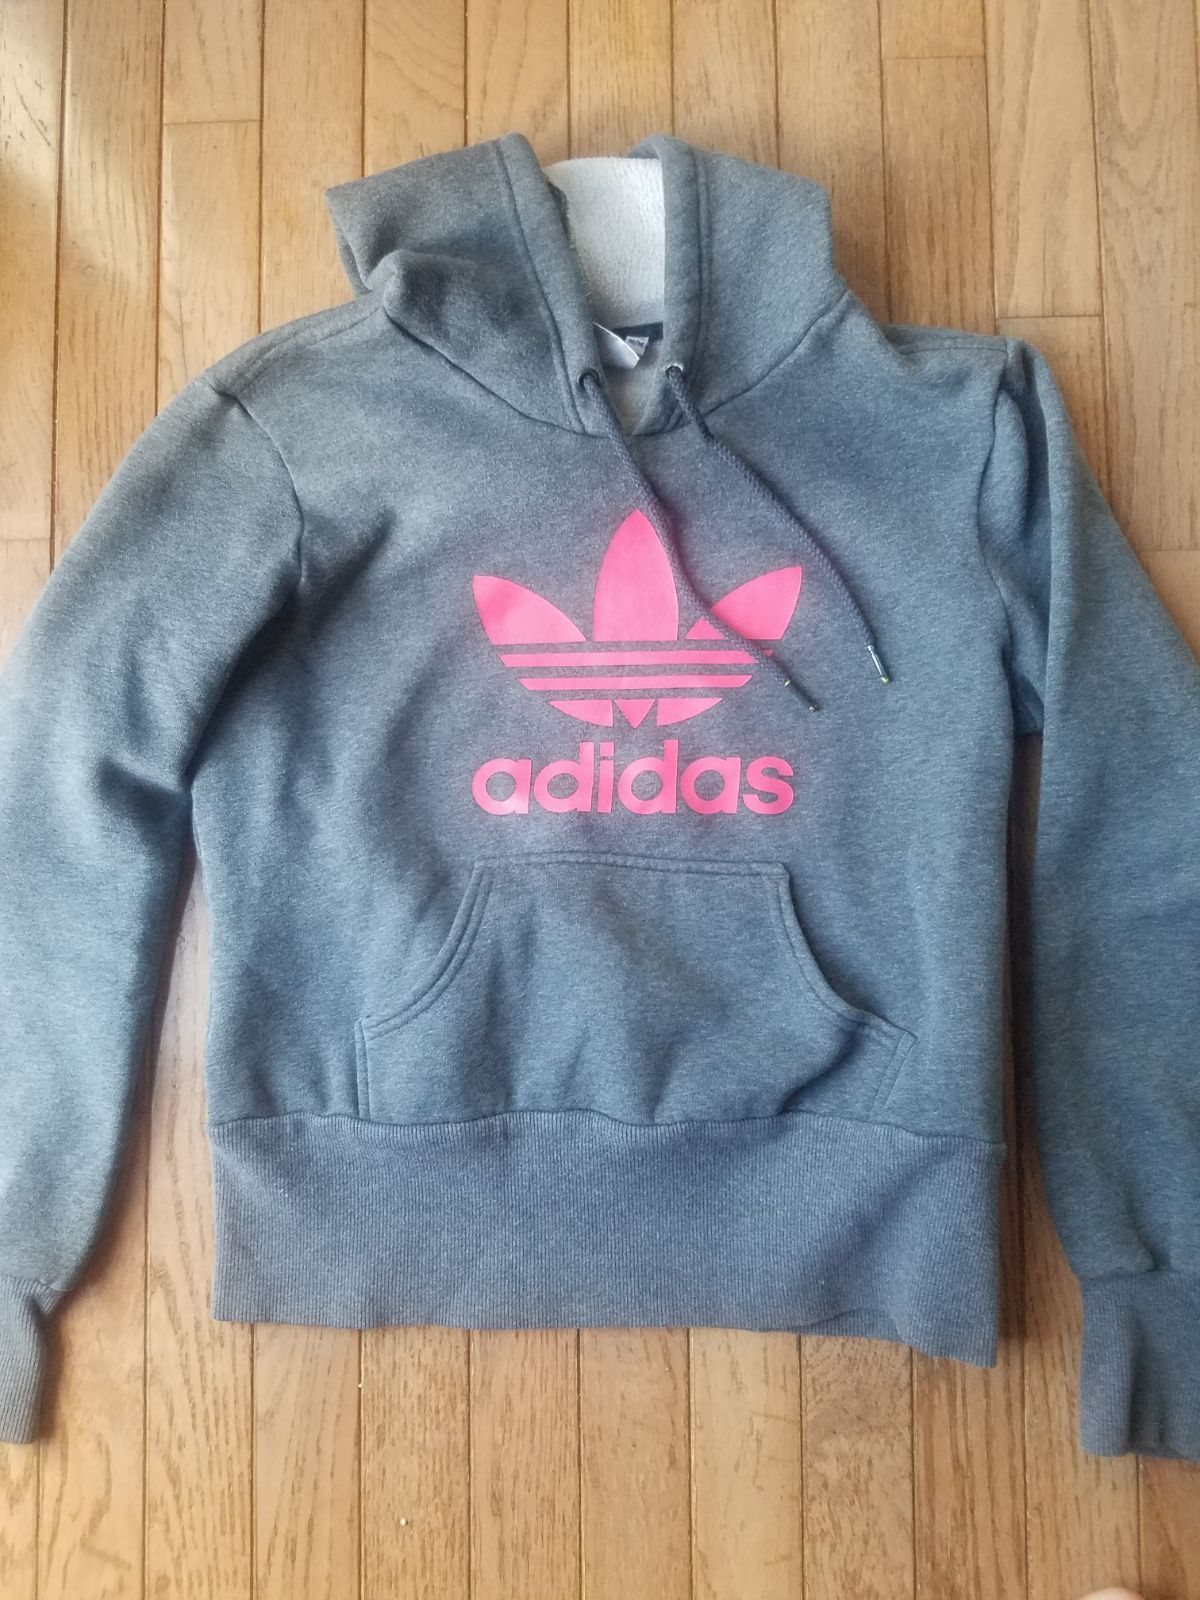 Cute Adidas Hoodie Dark Grey With Hot Pink Logo On The Front Soft Comfy Gently Used Runs Small Measuring Approx 20 Fro Adidas Hoodie Hoodies Adidas [ 1600 x 1200 Pixel ]